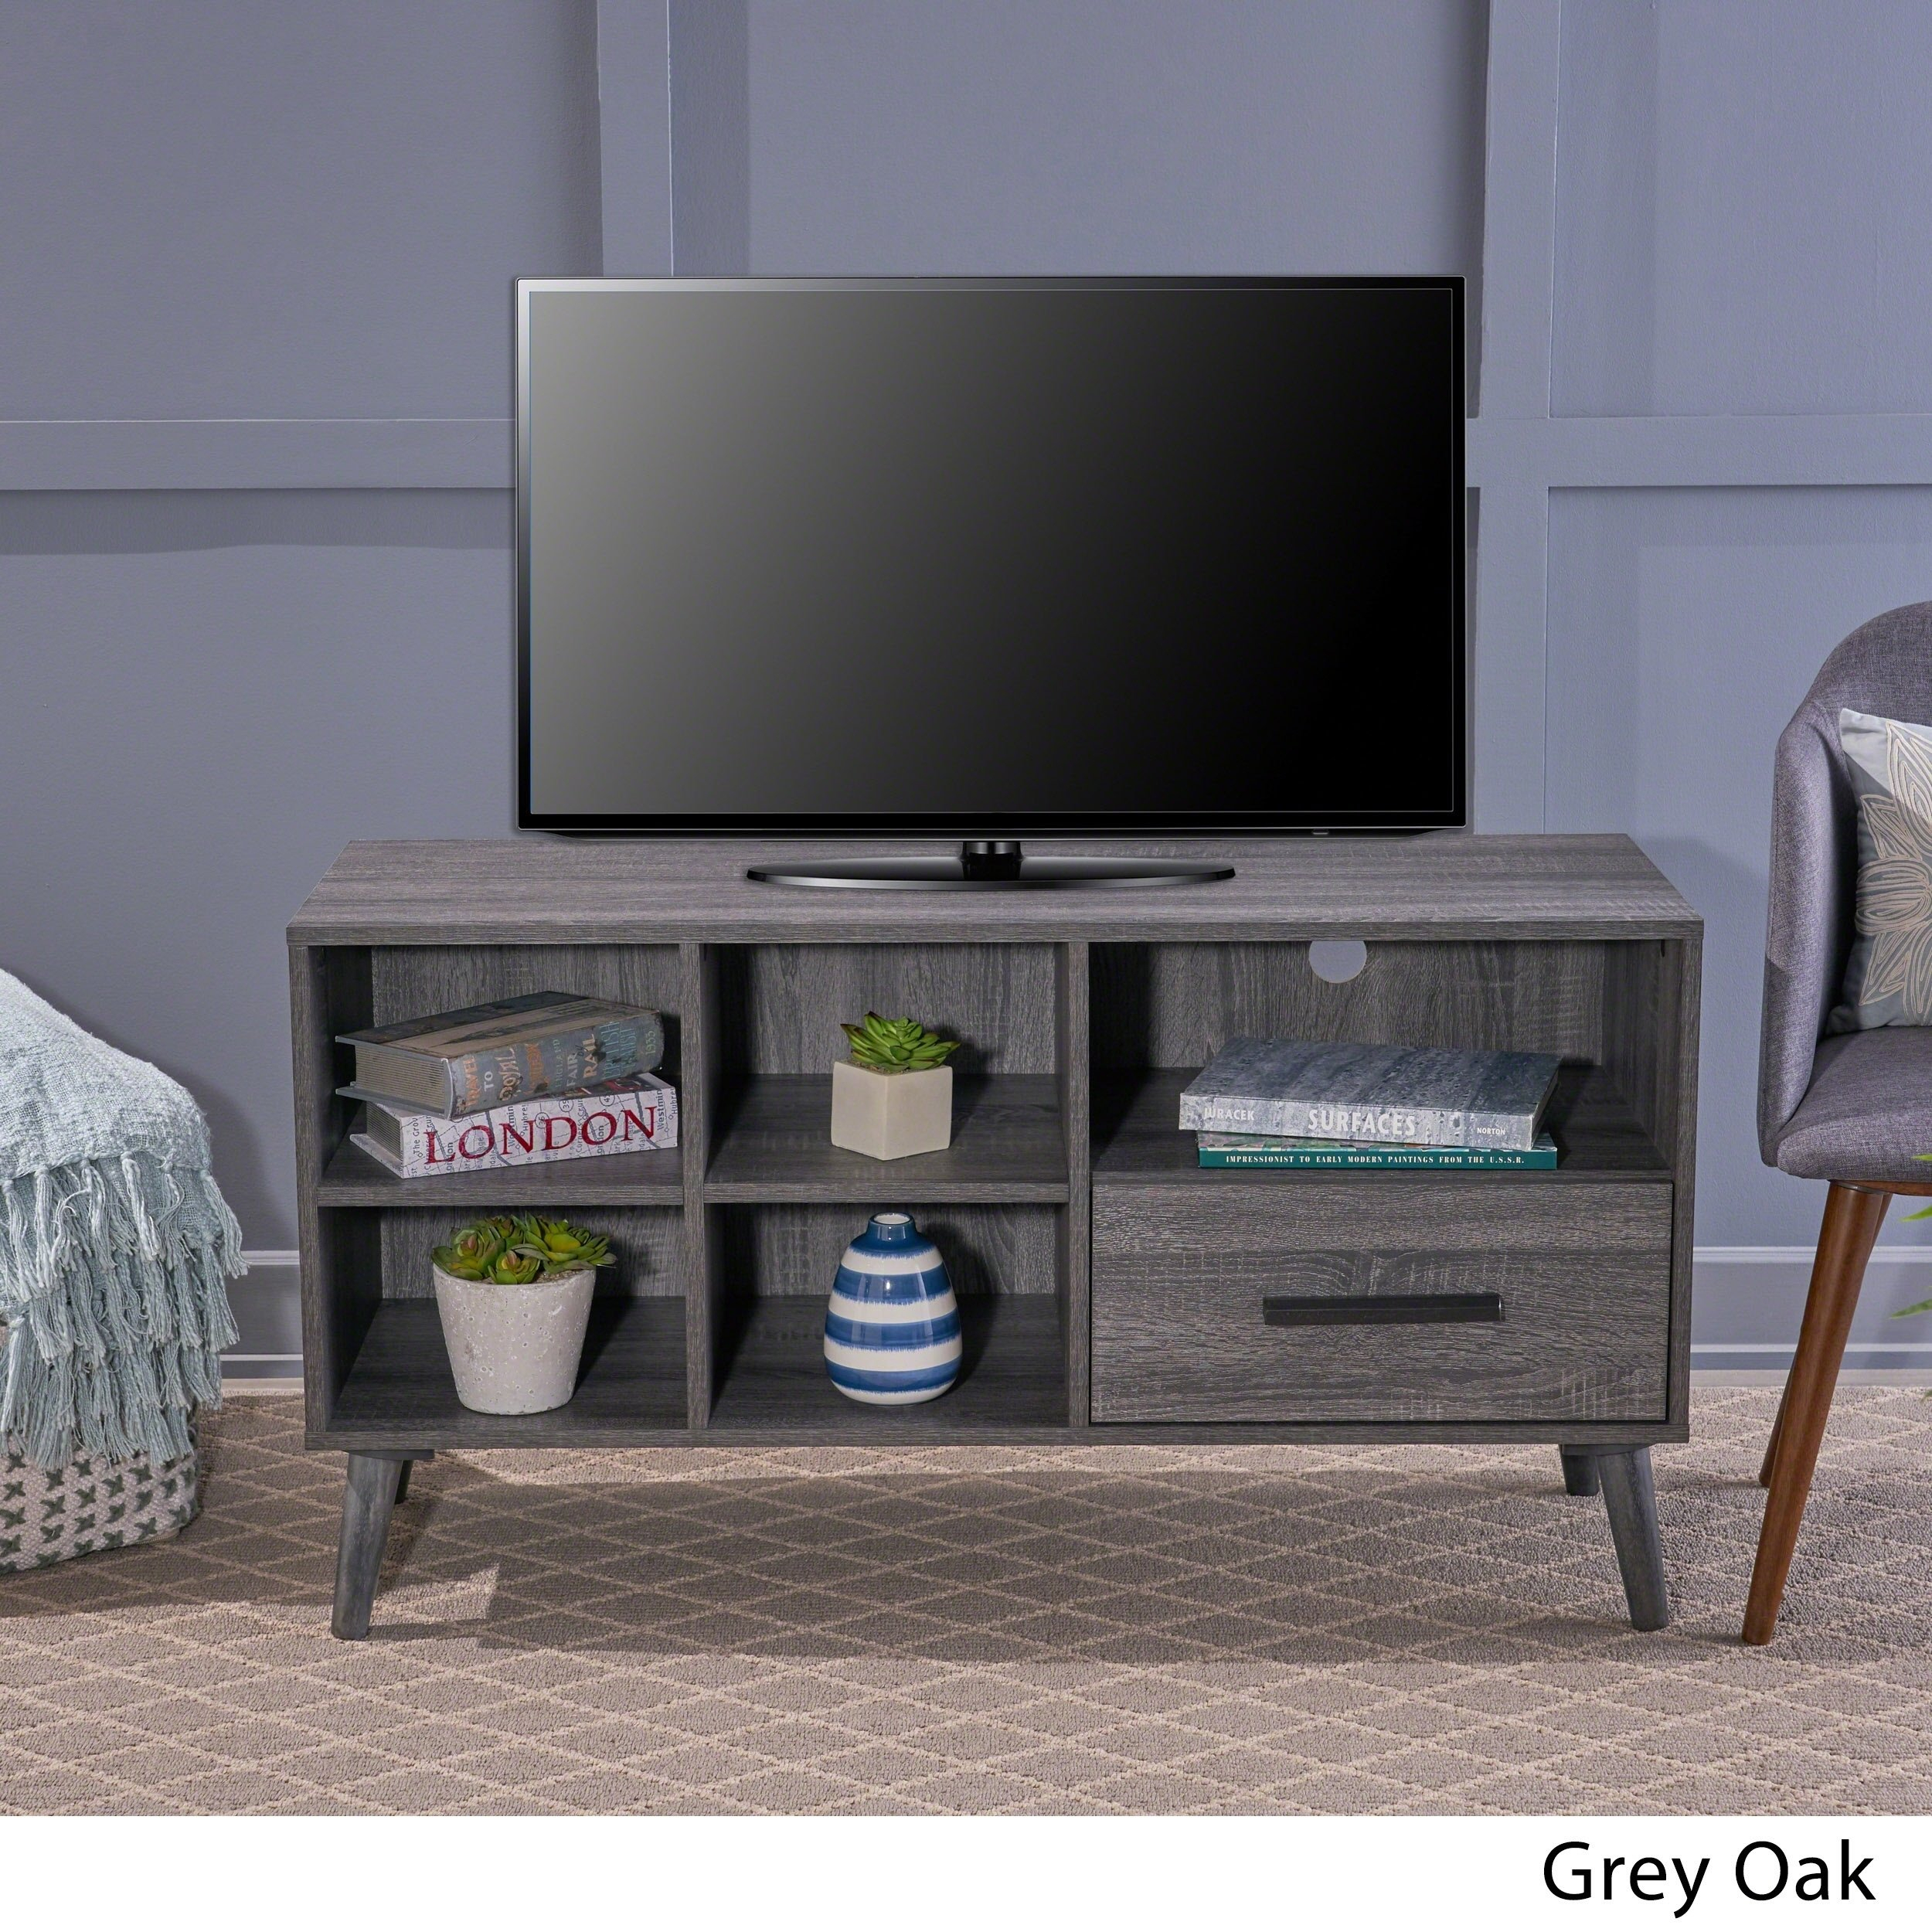 Buy Grey, 42 - 60 Inches Tv Stands & Entertainment Centers Online At pertaining to Rowan 64 Inch Tv Stands (Image 10 of 30)